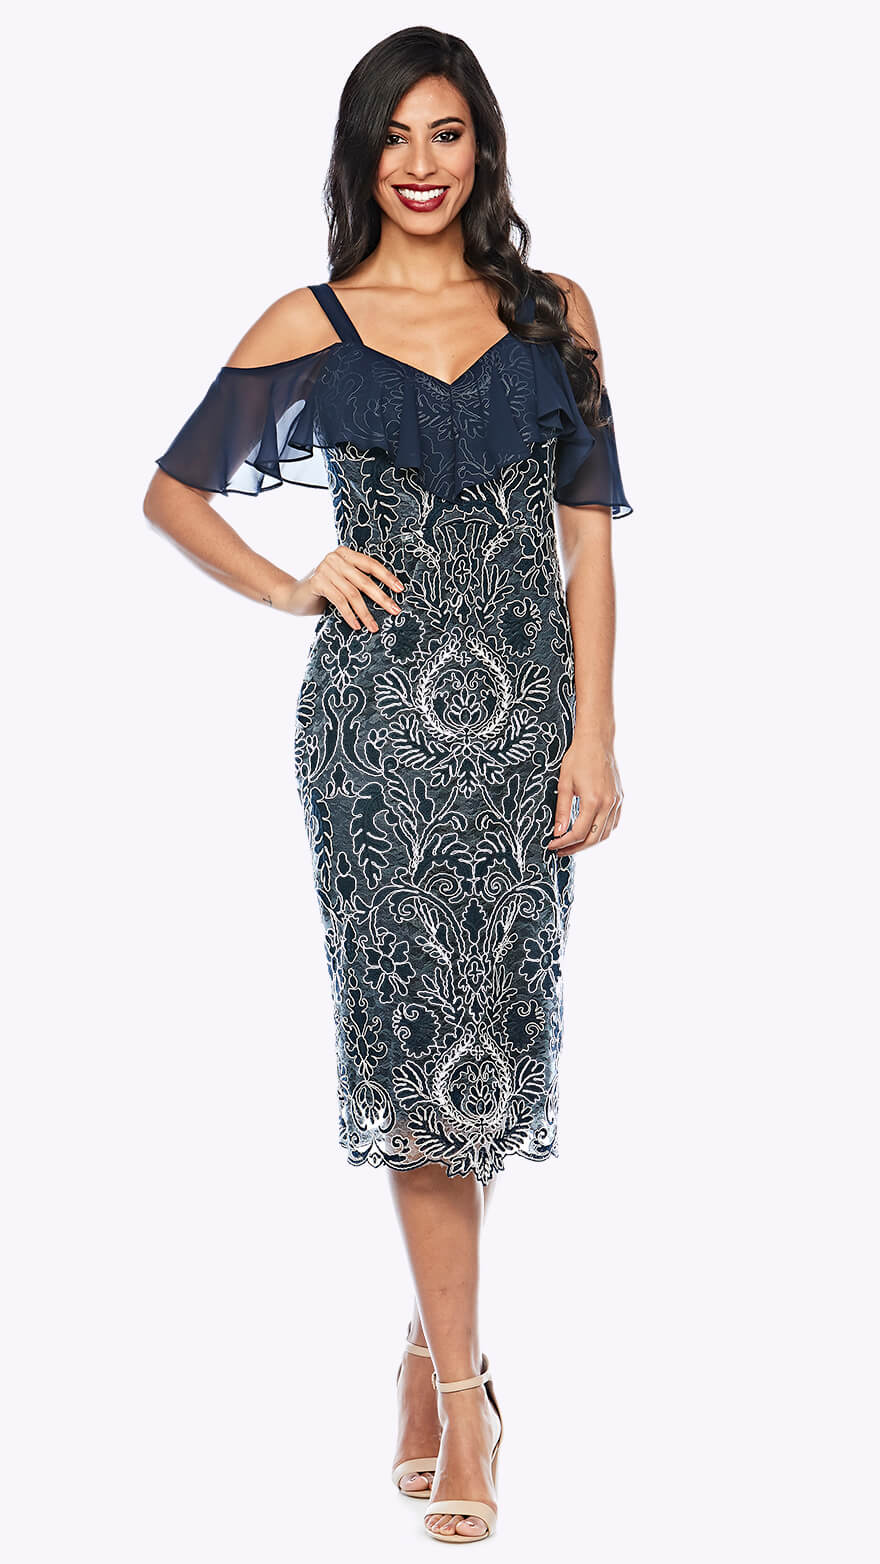 Z00145 Cold-shoulder corded lace dress with chiffon overlay sleeve